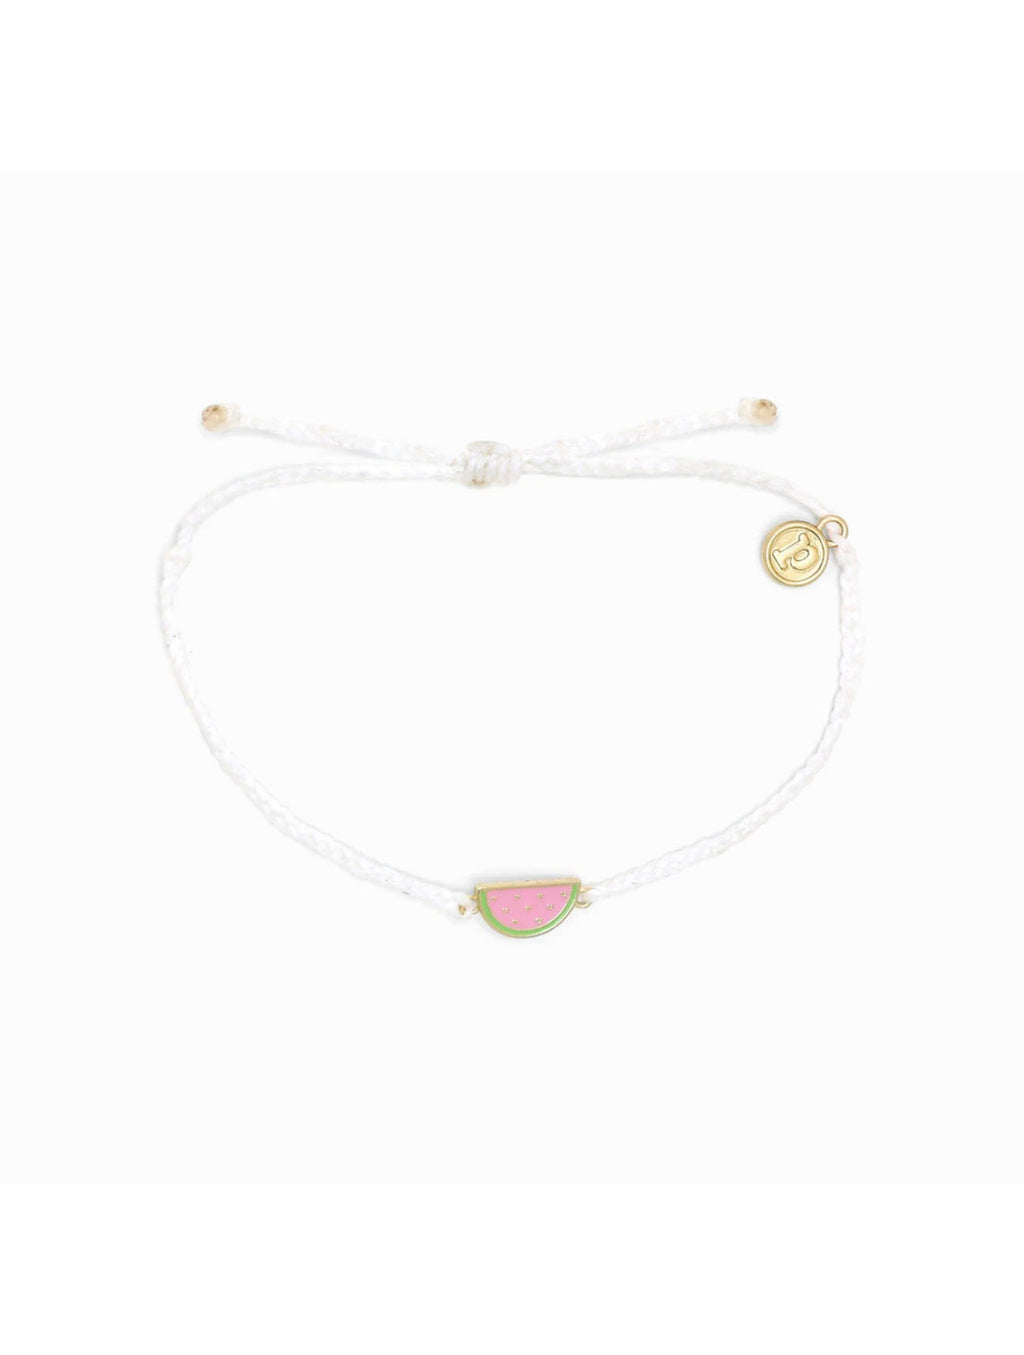 Pura Vida Watermelon Bracelet in White